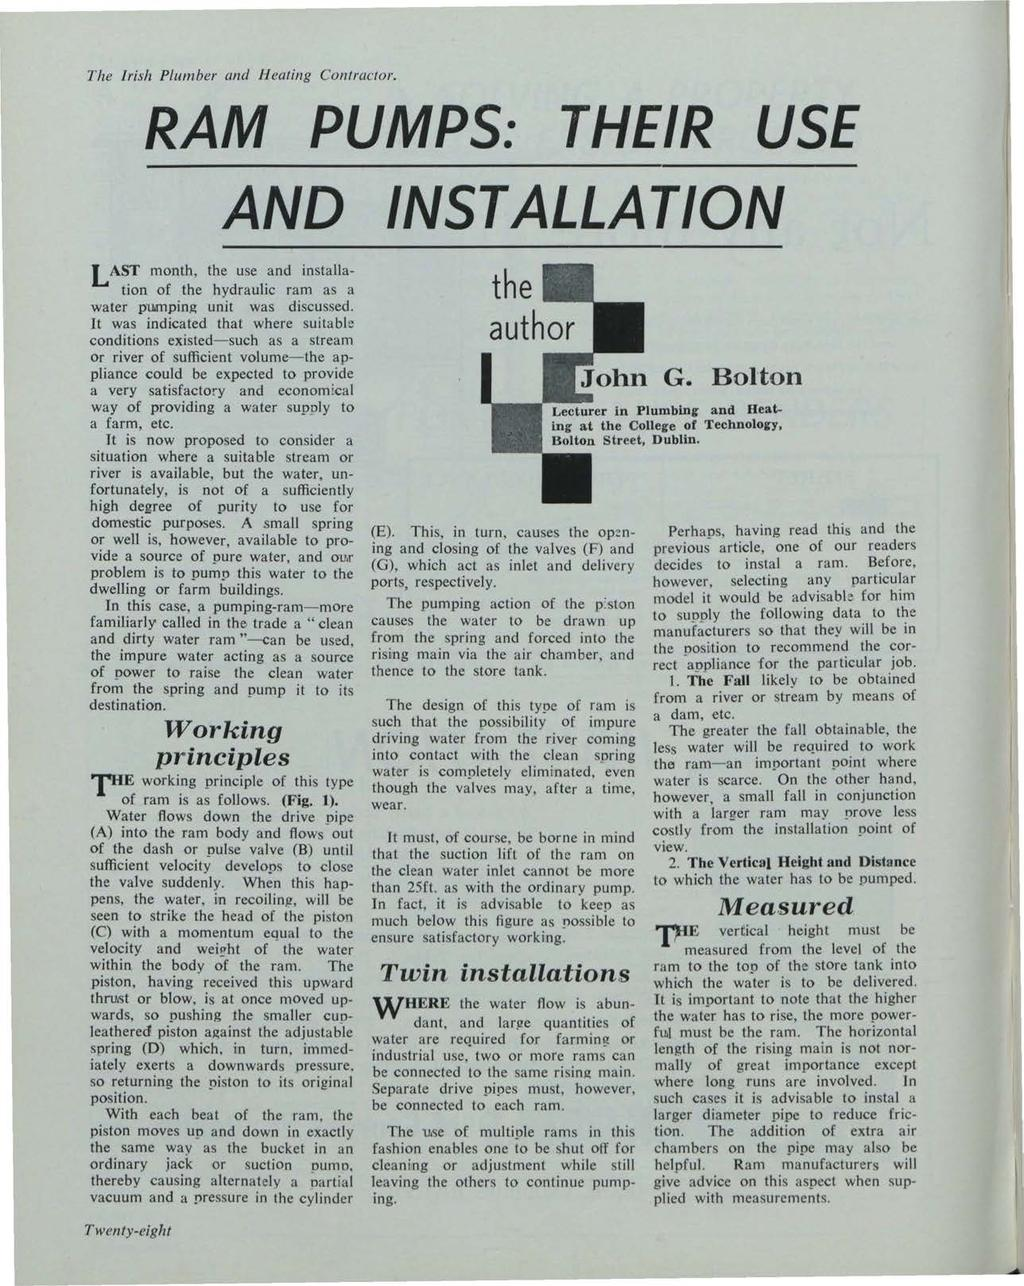 Building Services News, Vol. 2, Iss. 12 [1963], Art. 1 The Irish Plumber and Heating Contractor.